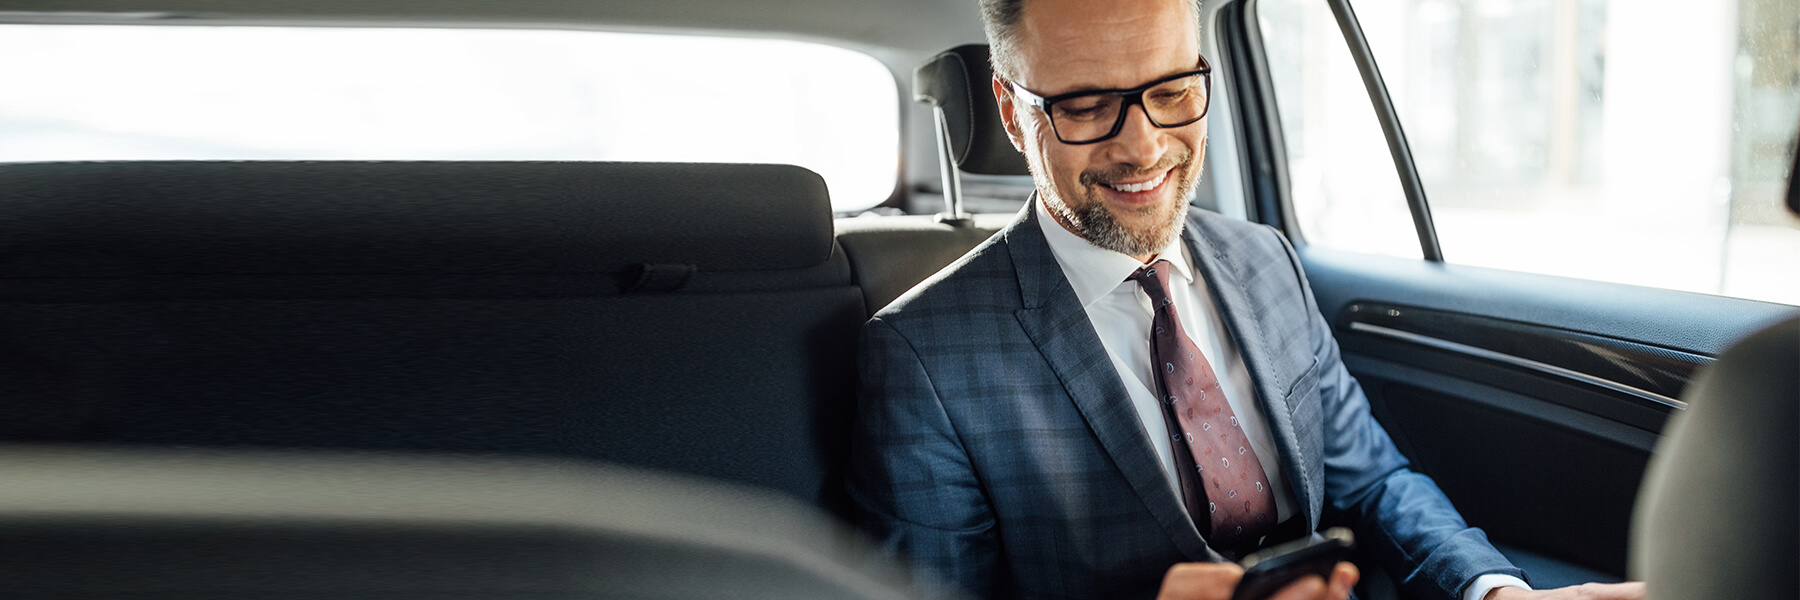 Affluent business man with beard and glasses wearing expensive suit sits in back of town car smiles at mobile phone in hand